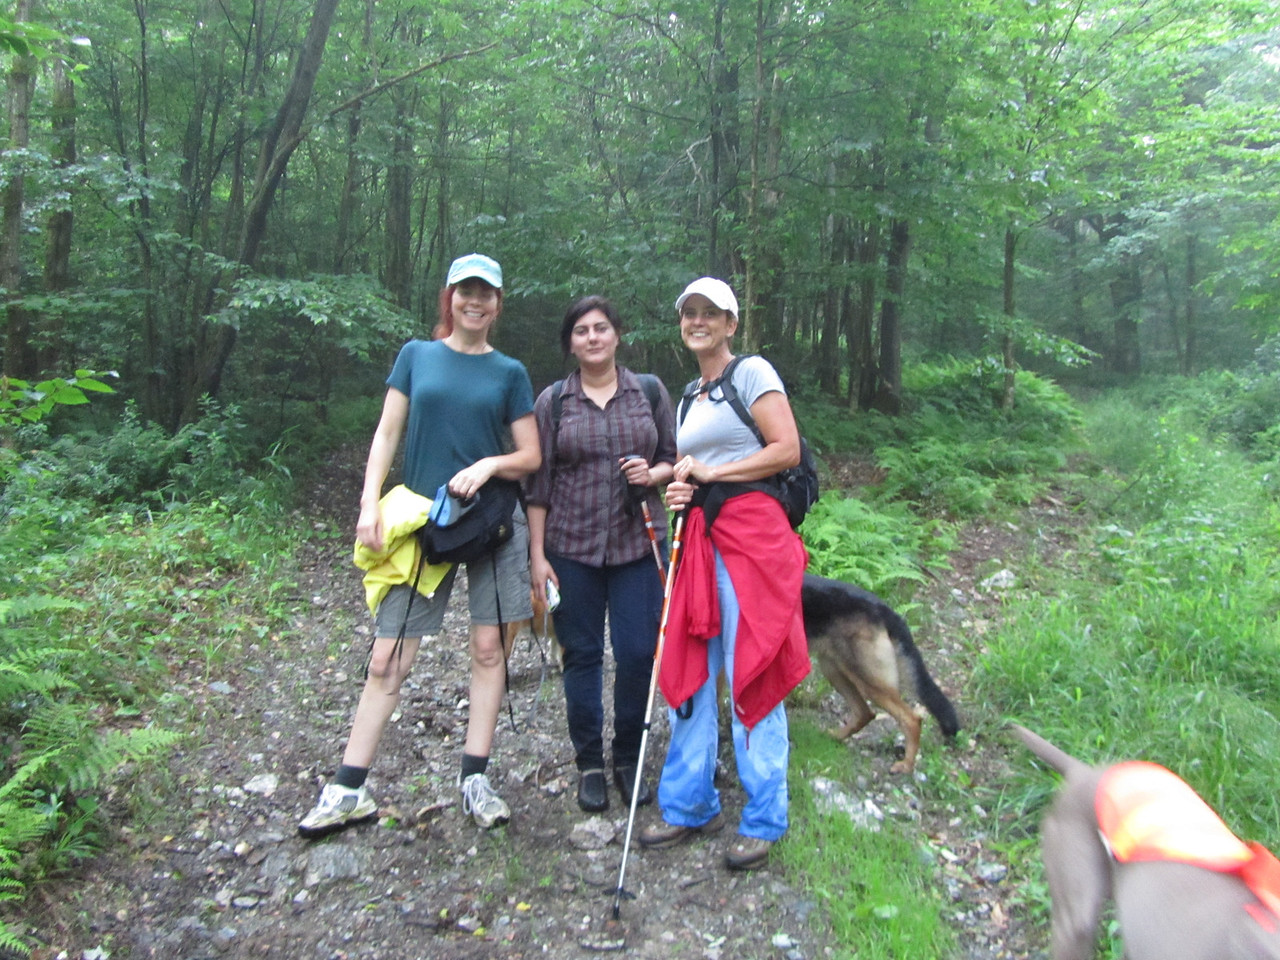 Prior to the descent through Berlin Pass, the rain stopped and we were teased with the thought that we might stay dry and have some views. Sadly no.<br /> <br /> I don't know where Jill was hiking with those wet pants, but the rest of us were dry at this point. The dogs were having a marking contest, which might explain it. Look at how guilty the dogs look! All three hiding their faces. Jill, you better wash those scrubs pronto!